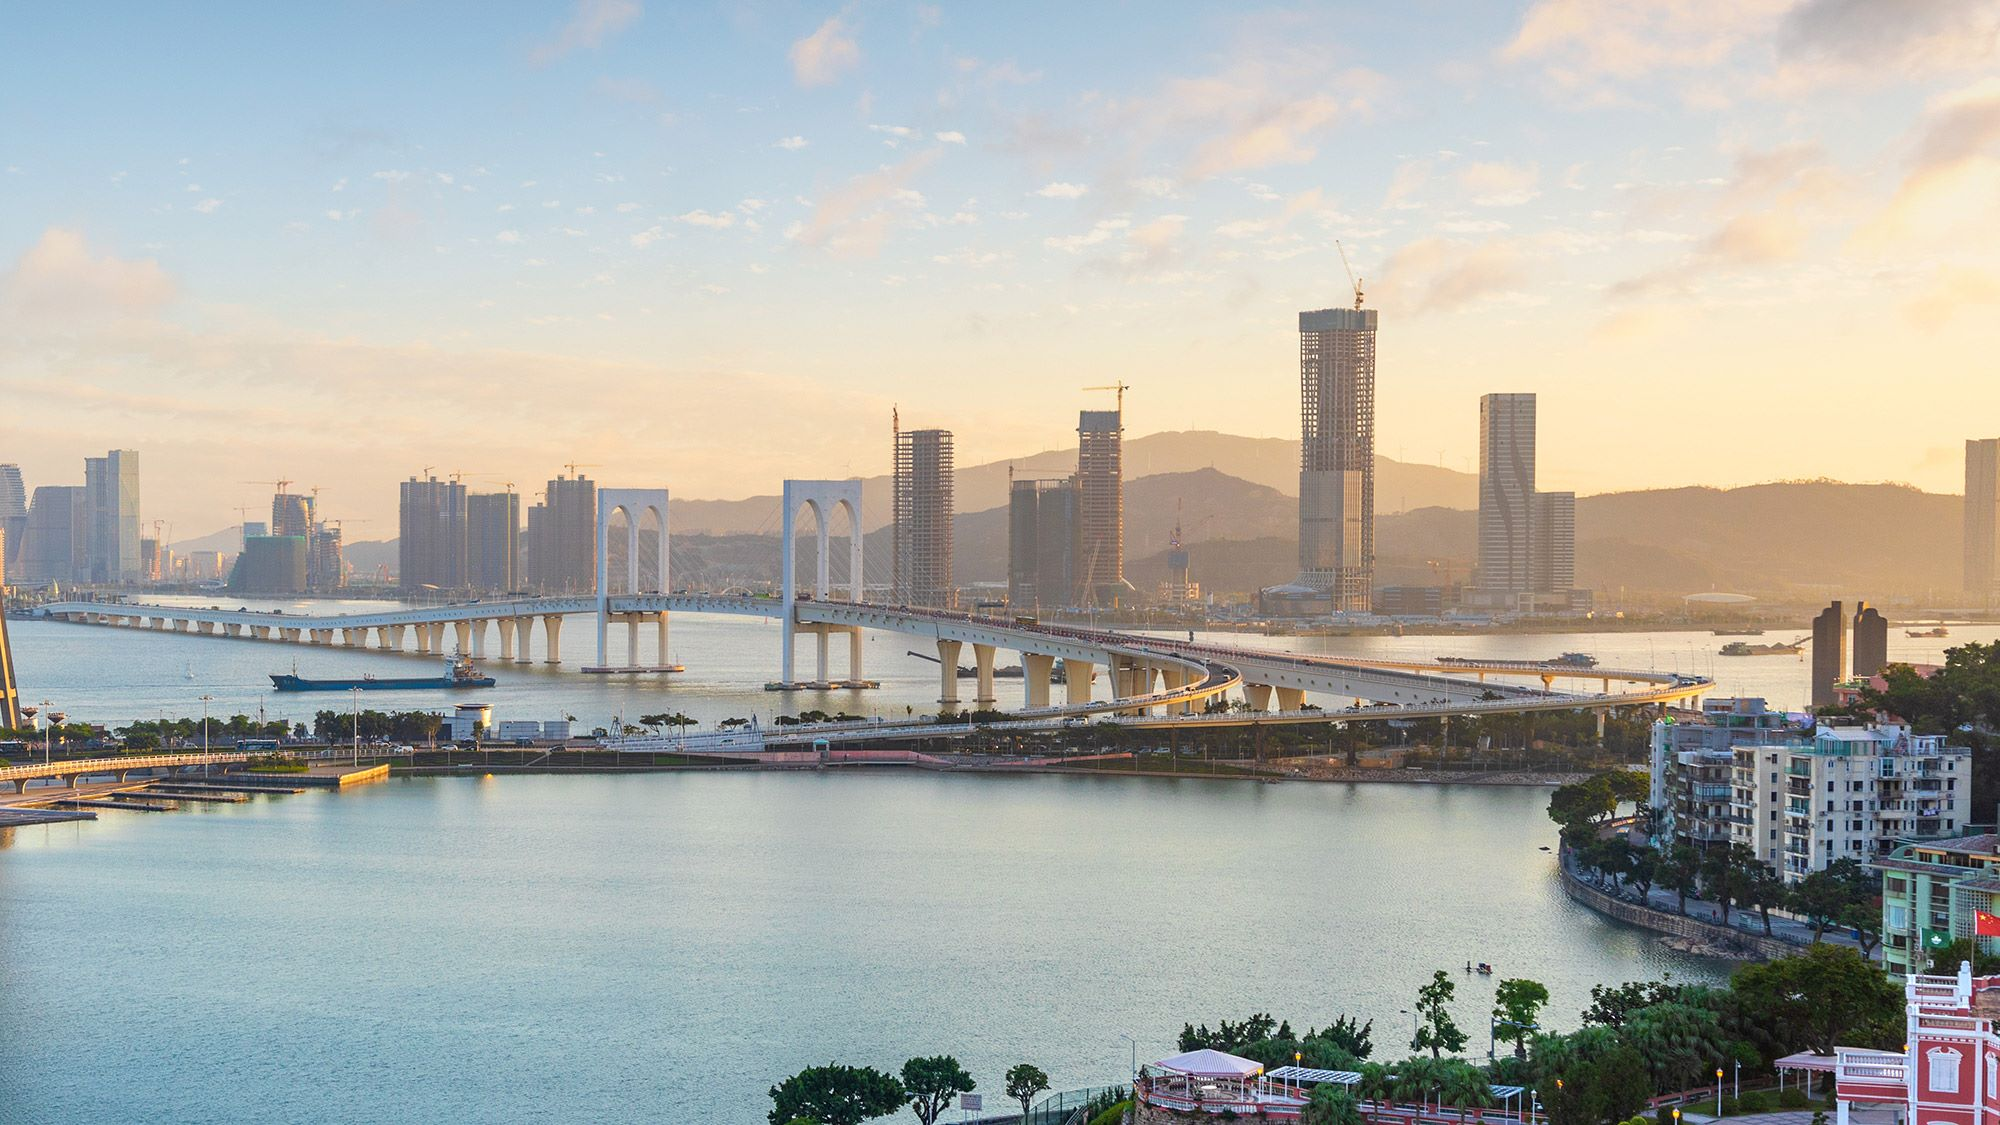 Macau city skyline at sunset